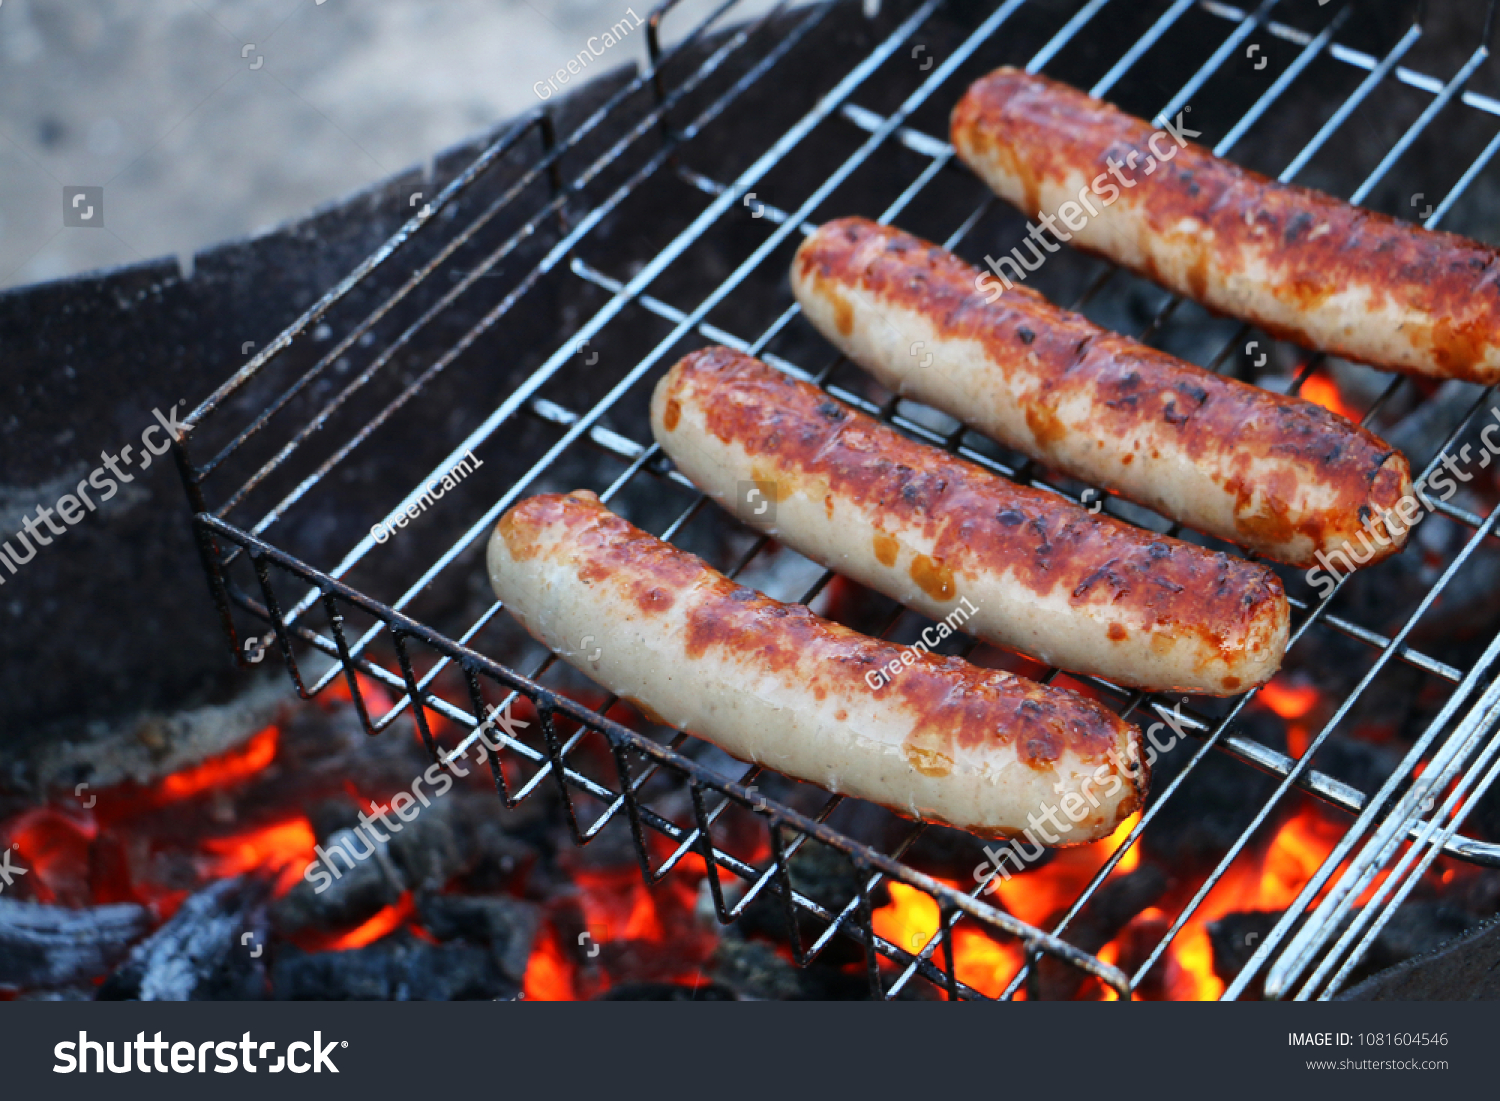 Coal Bbq Frying Sausages On Bbq Coal Grill Stock Photo Edit Now